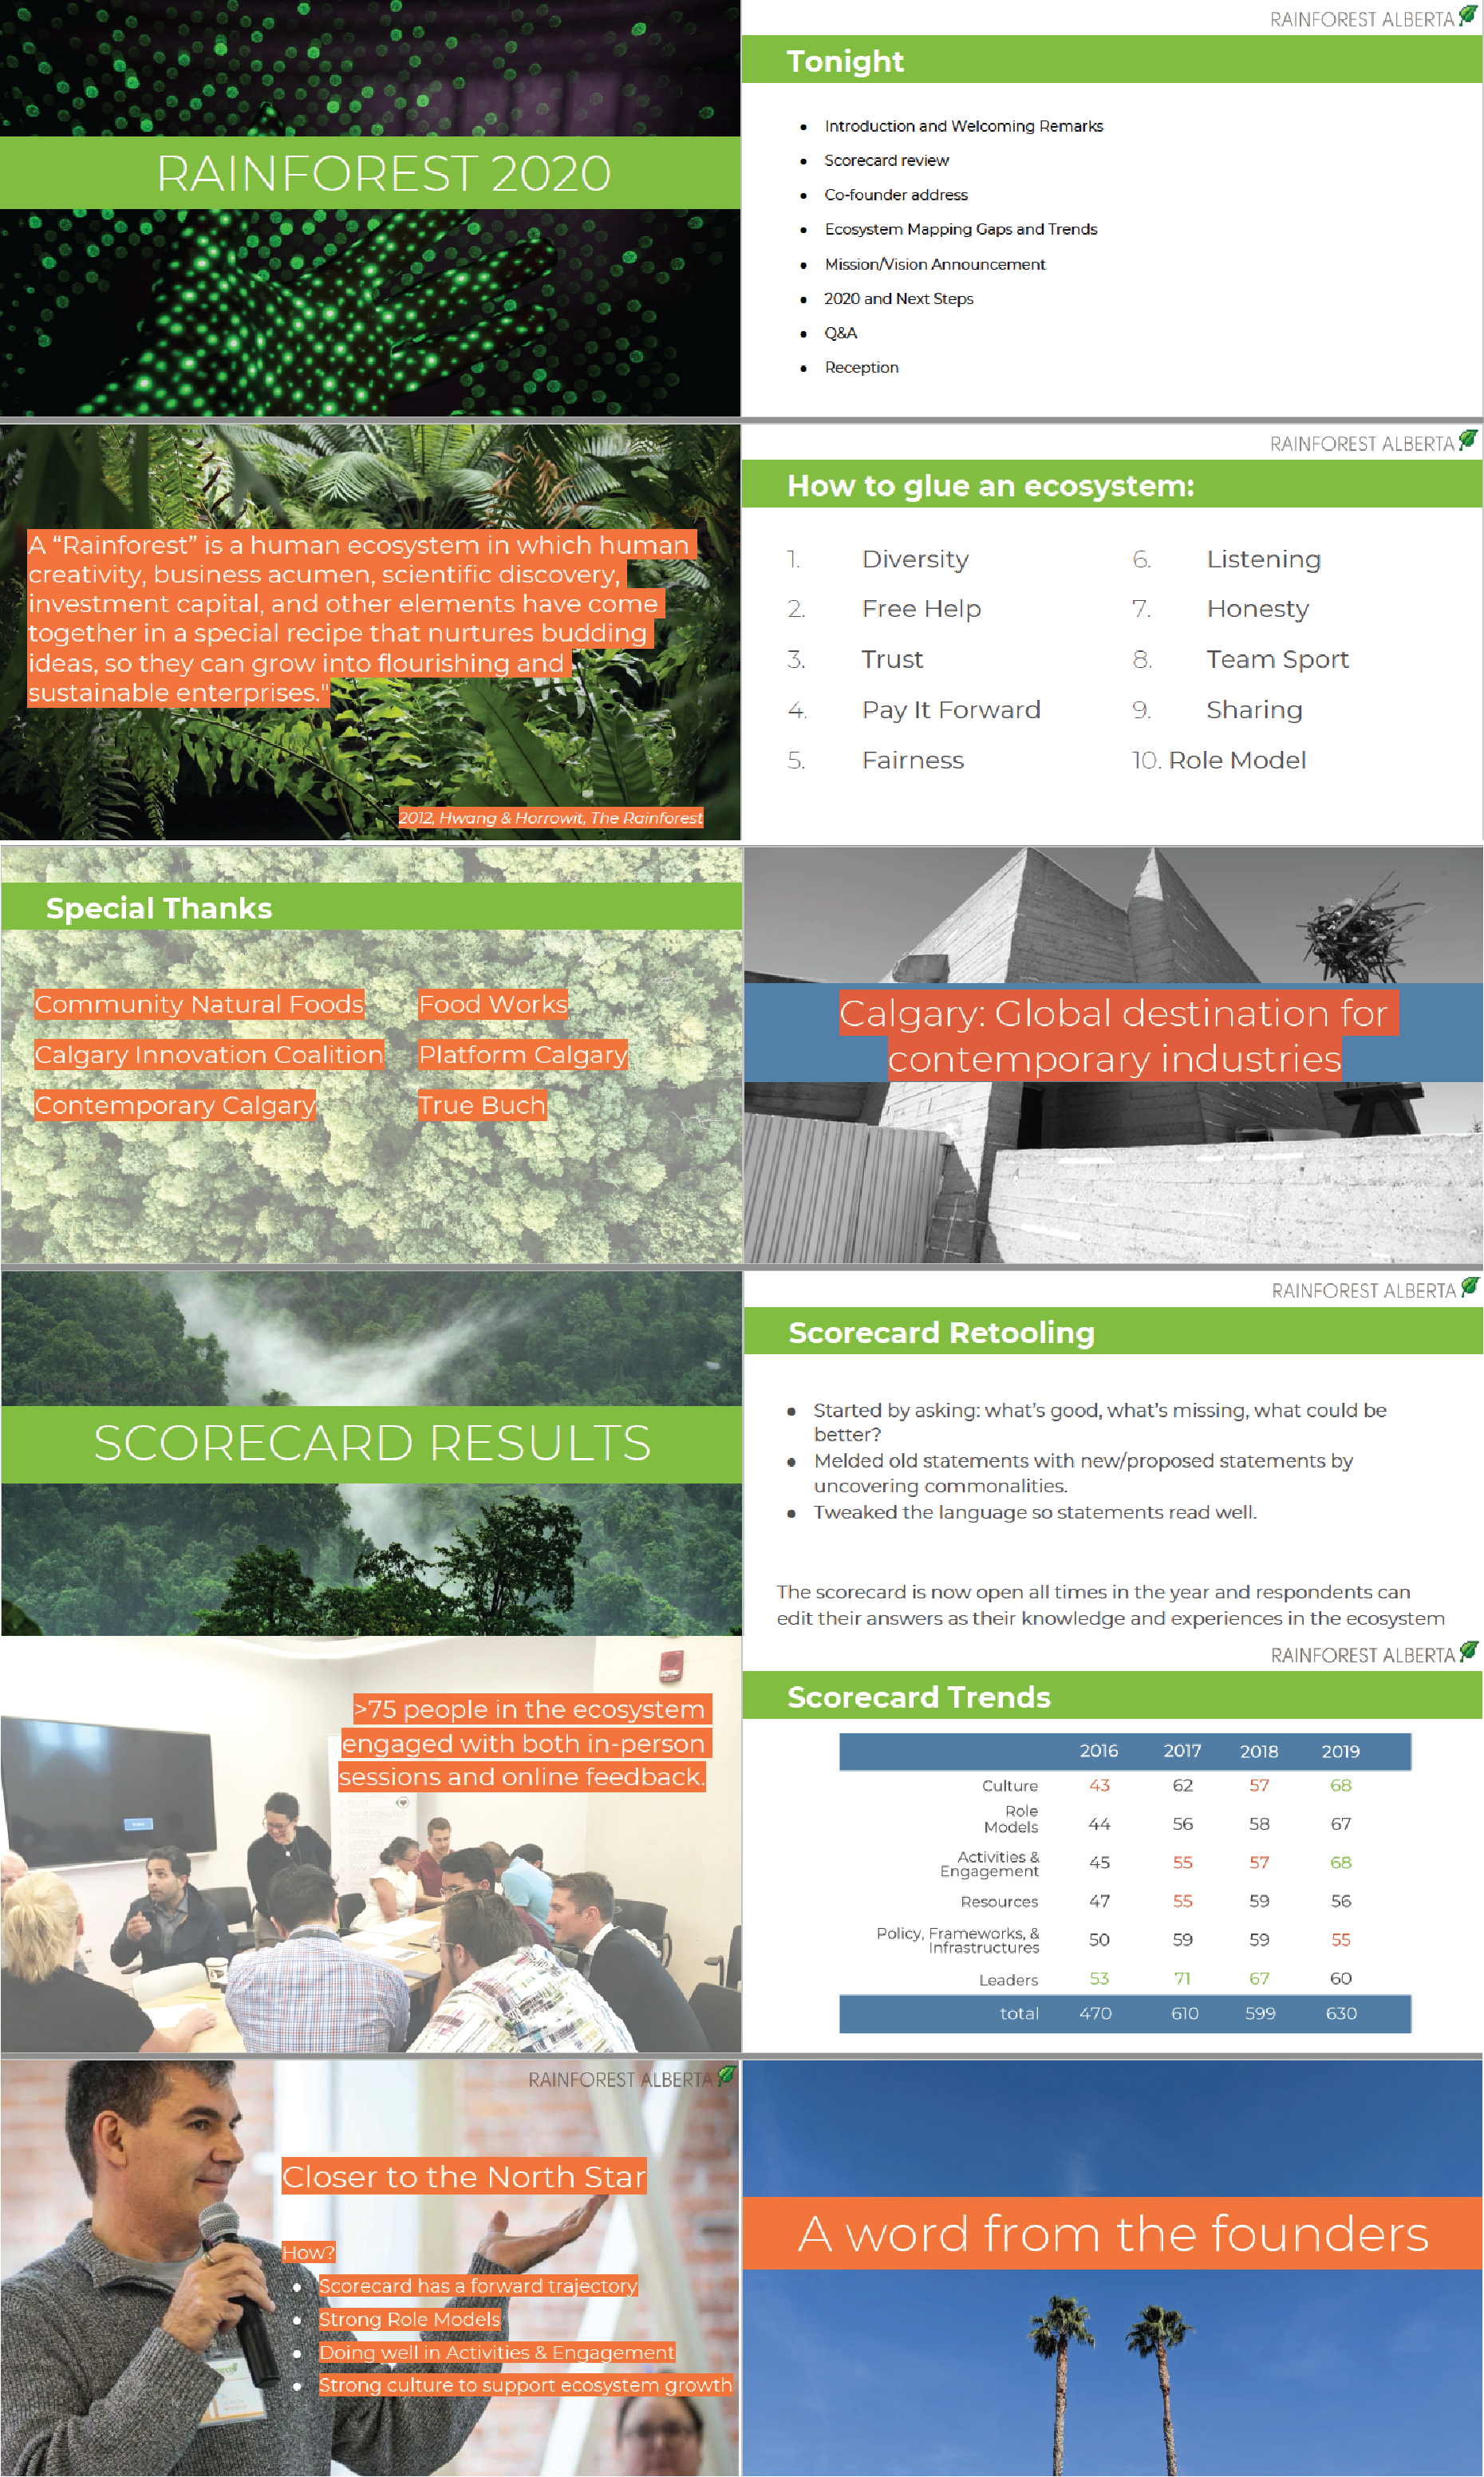 Rainforest 2020 case study pngs-01